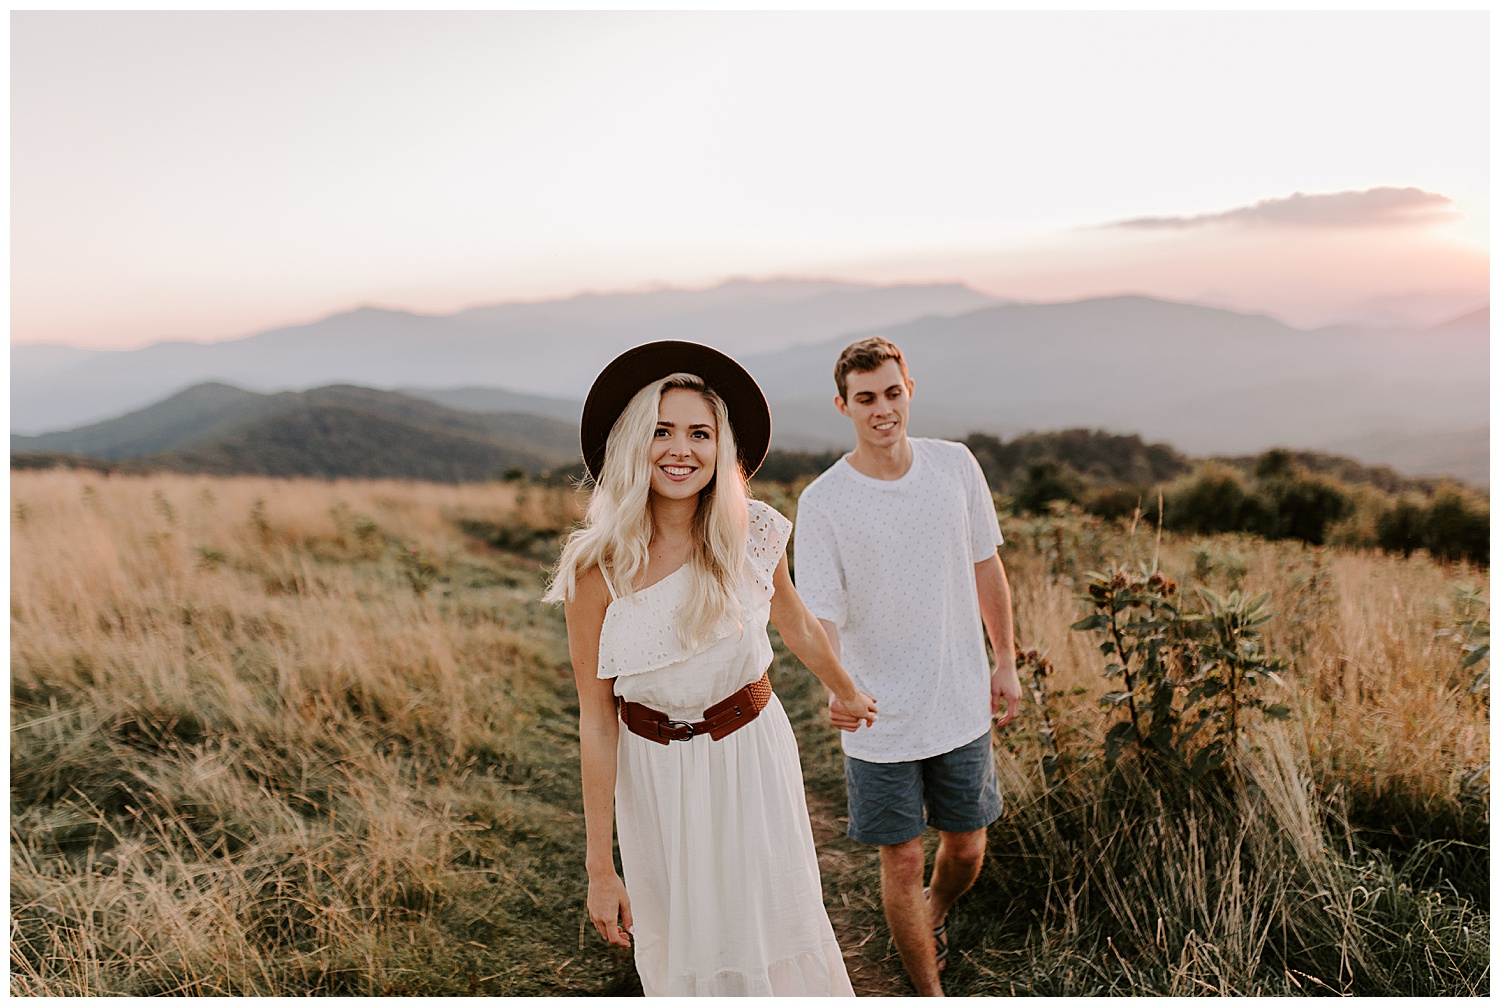 HANNAH_NICK_MAXPATCH_ENGAGEMENT2019-09-05_0035.jpg